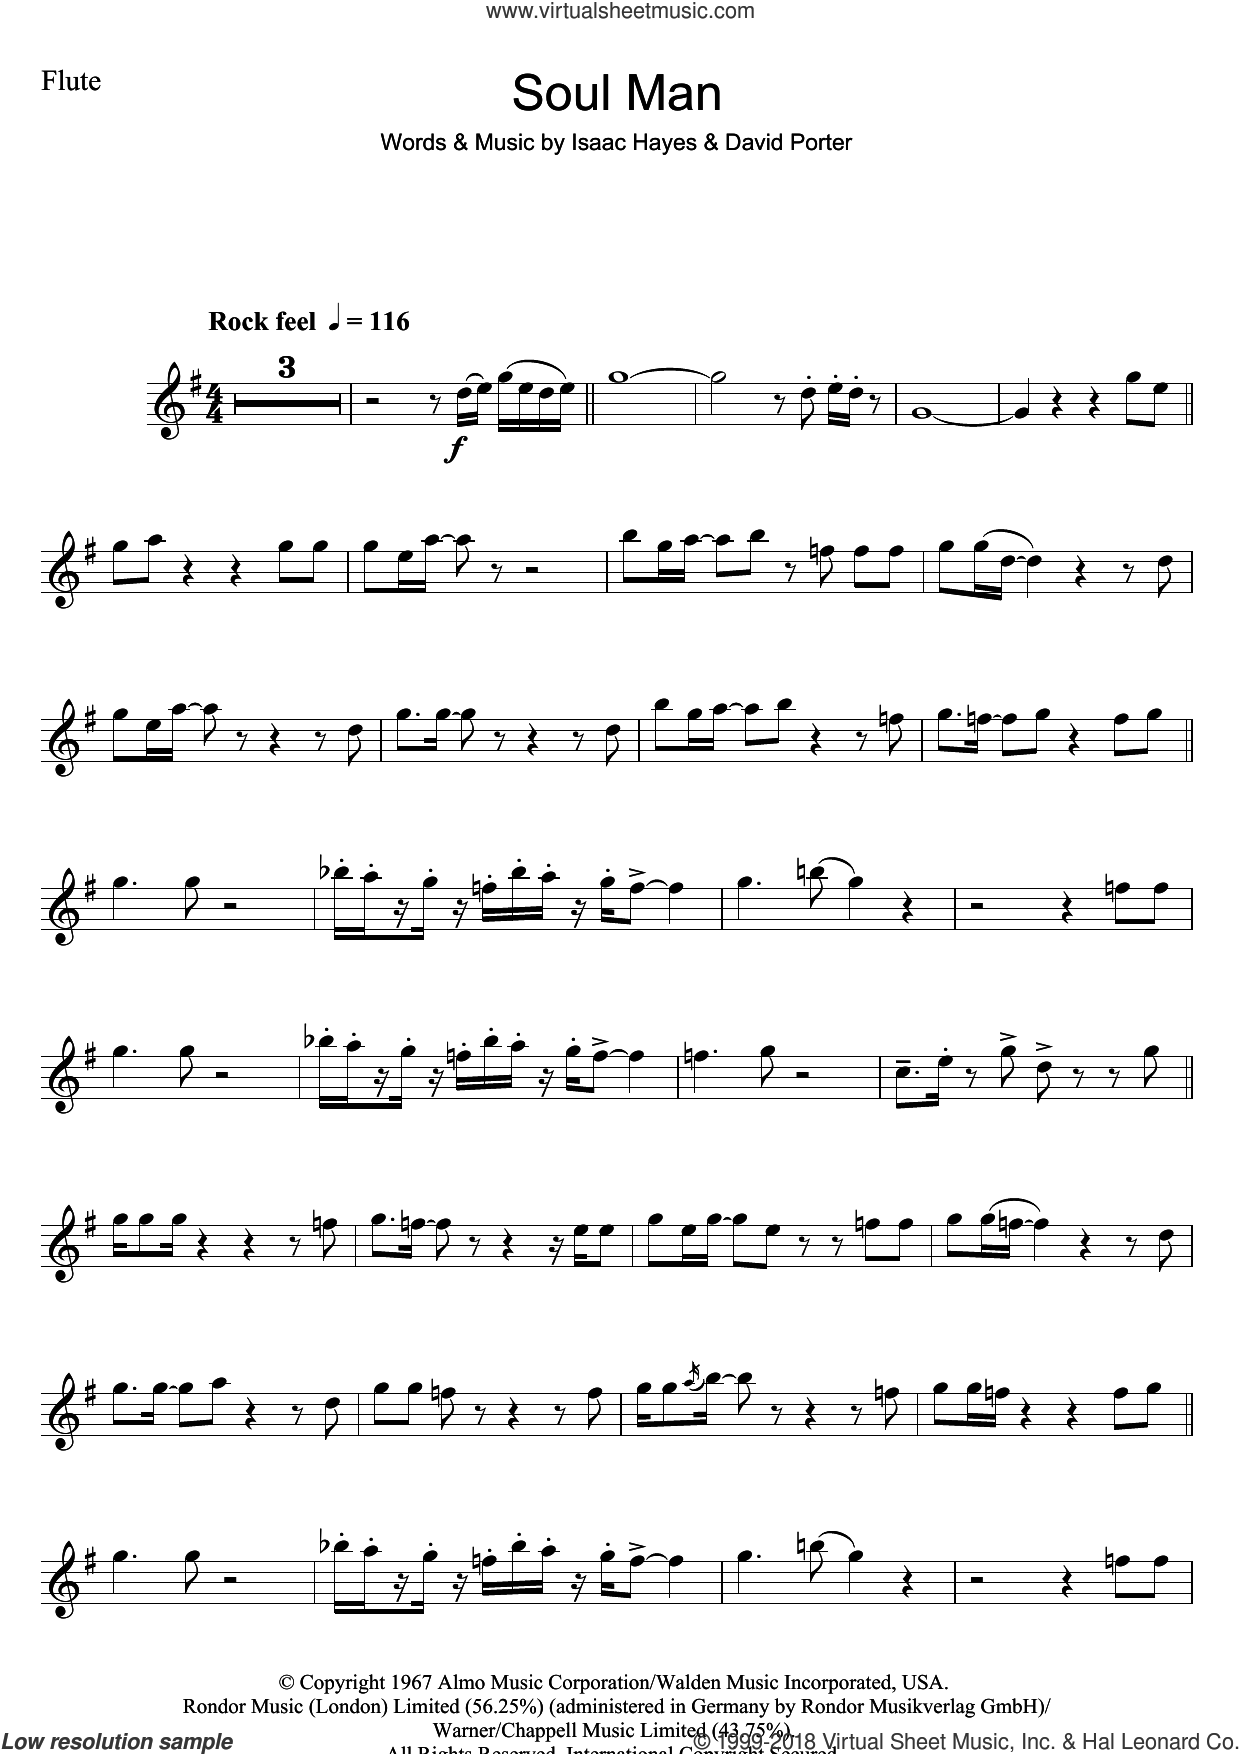 Soul Man sheet music for flute solo by Sam & Dave, David Porter and Isaac Hayes, intermediate skill level